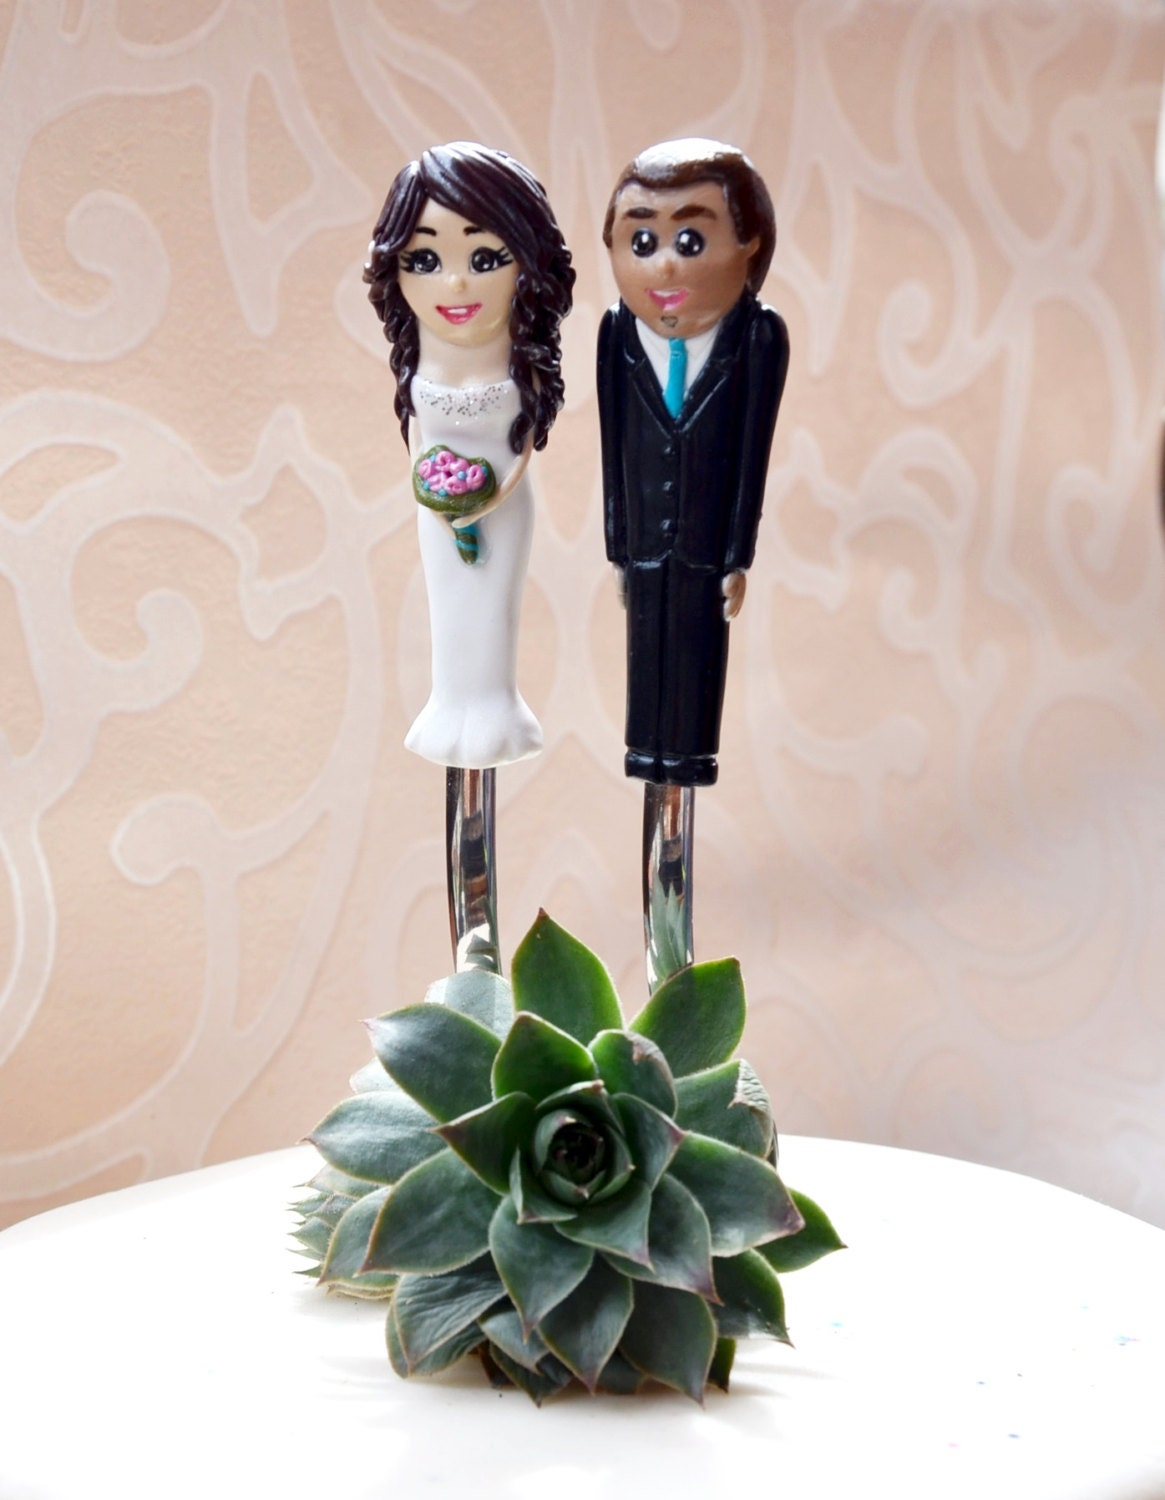 Personalized Wedding Cake Topper and Forks Bride and Groom